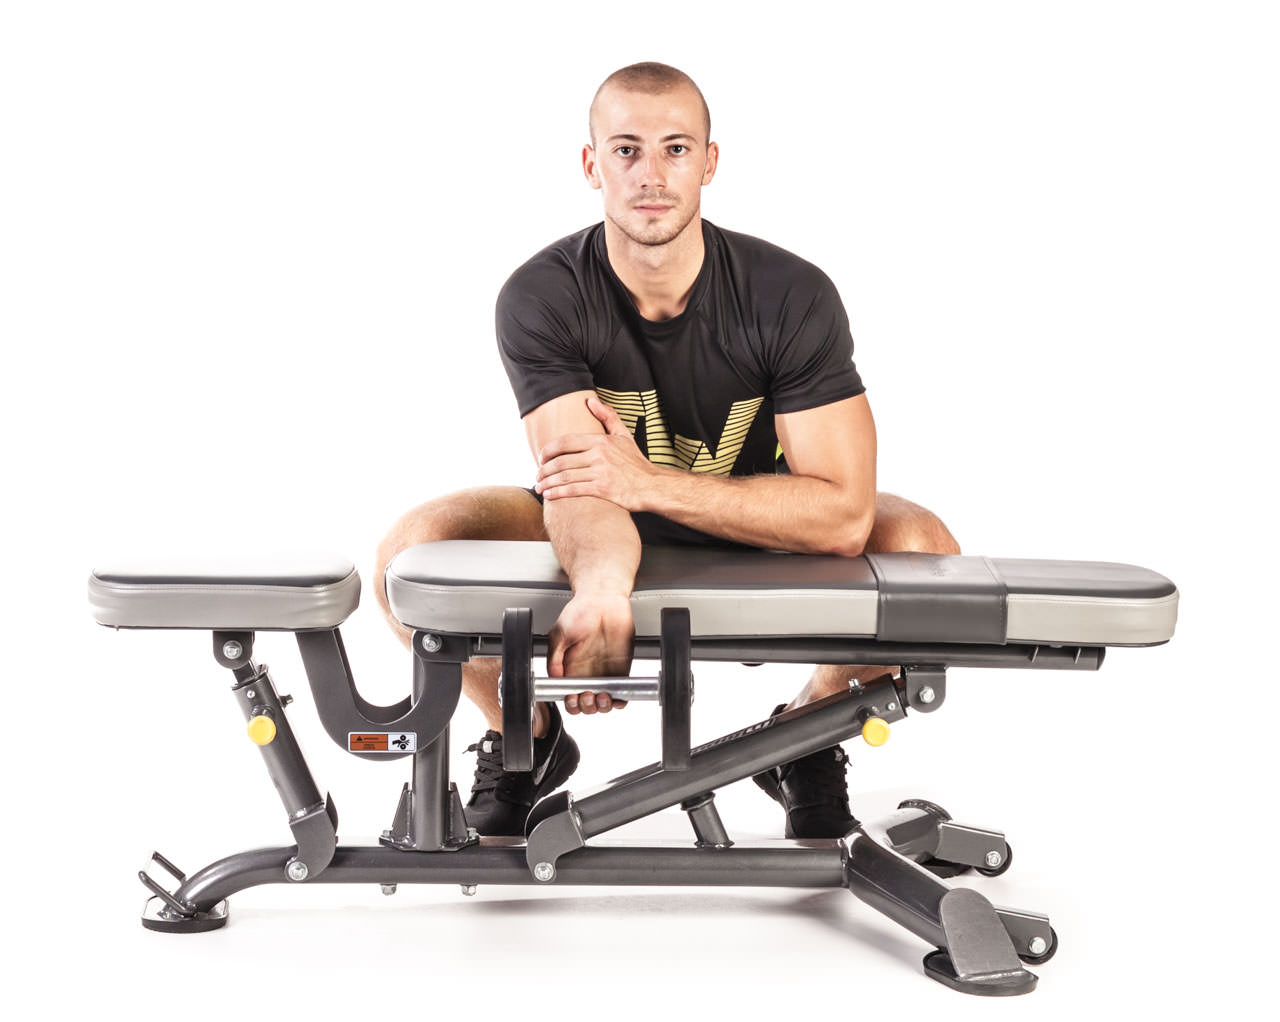 One-Arm Dumbbell Wrist Curl Over a Bench frame #1